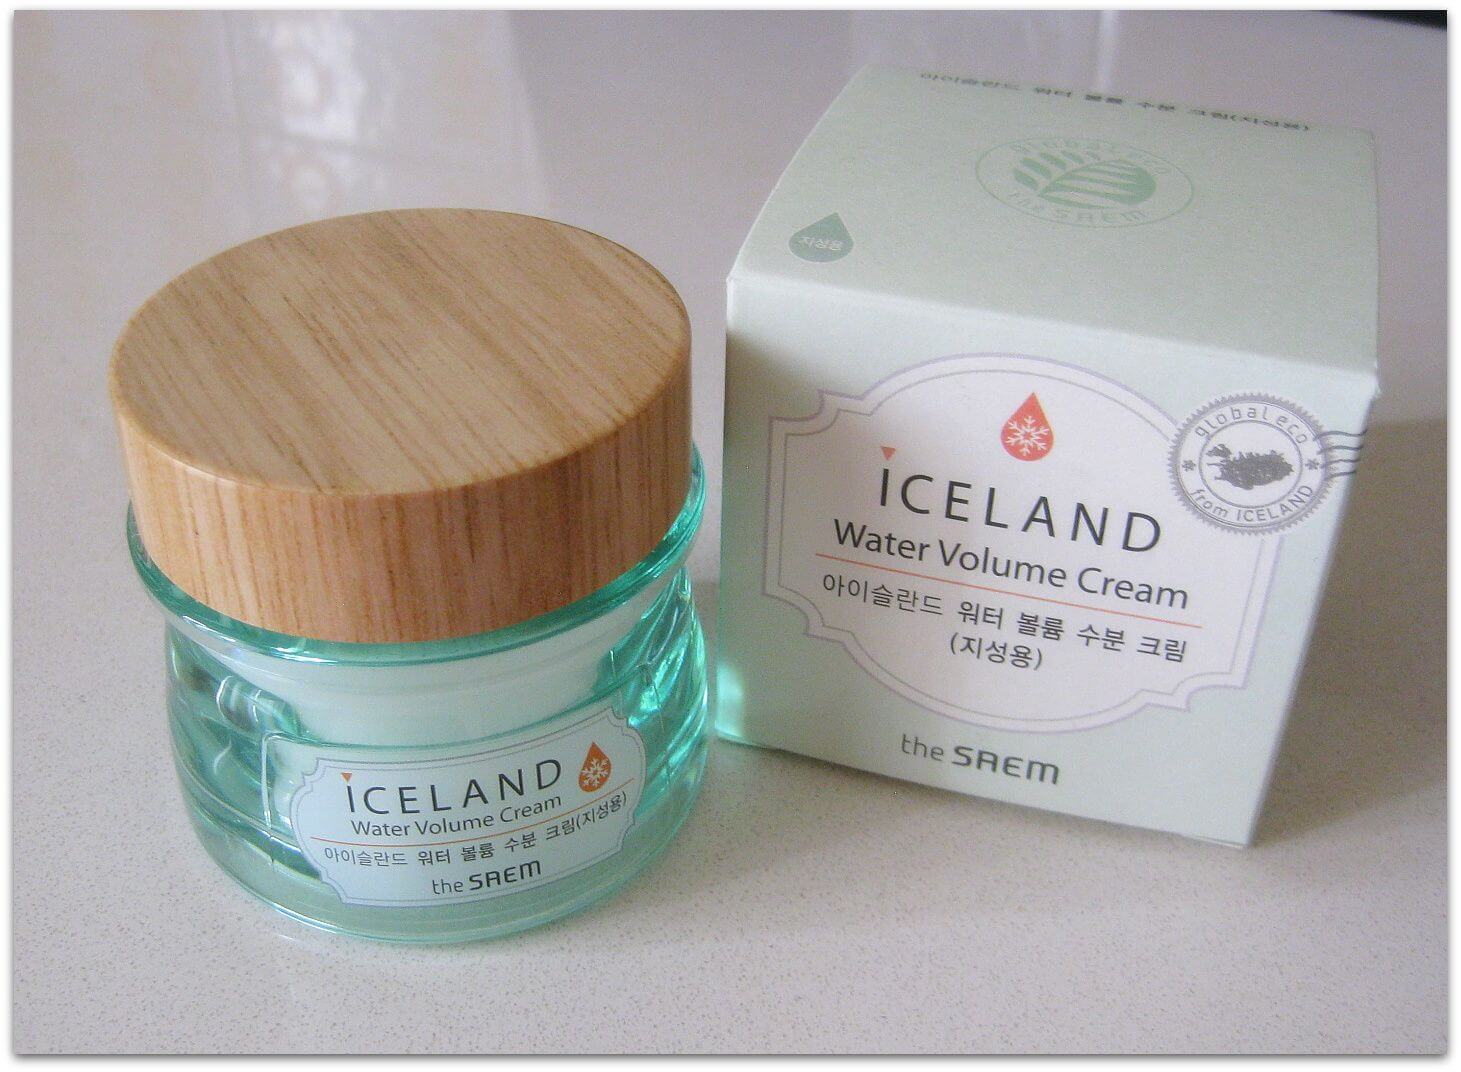 Iceland Water Volume Cream-bicicosmetics.vn